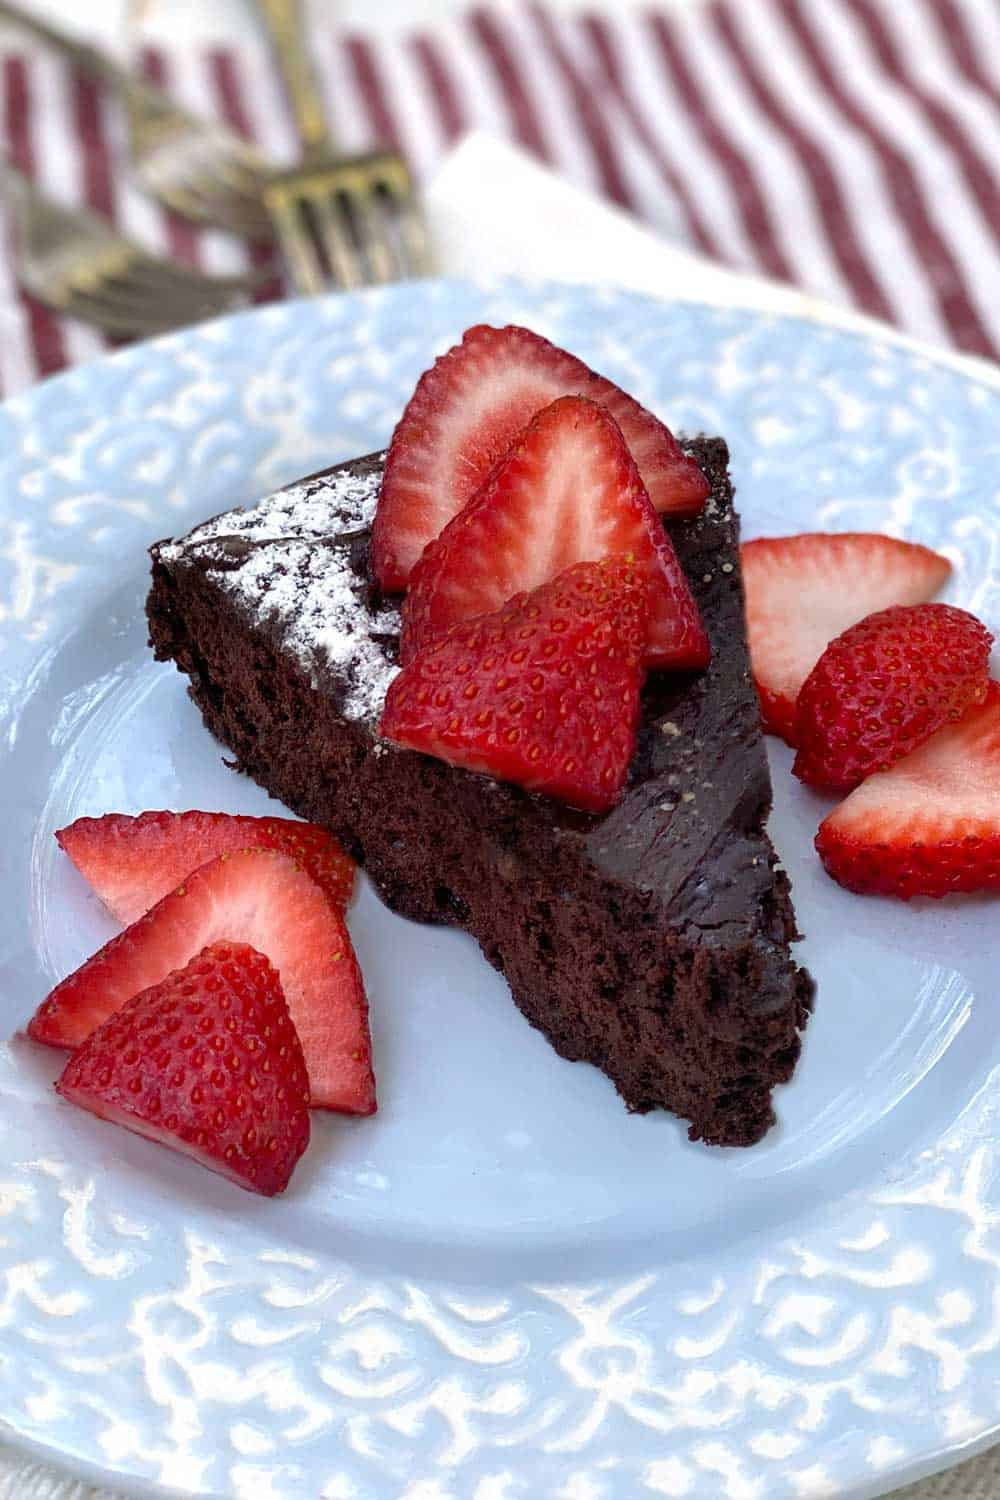 slice of flourless chocolate truffle cake on a light blue plate with sliced strawberries on top and on the sides